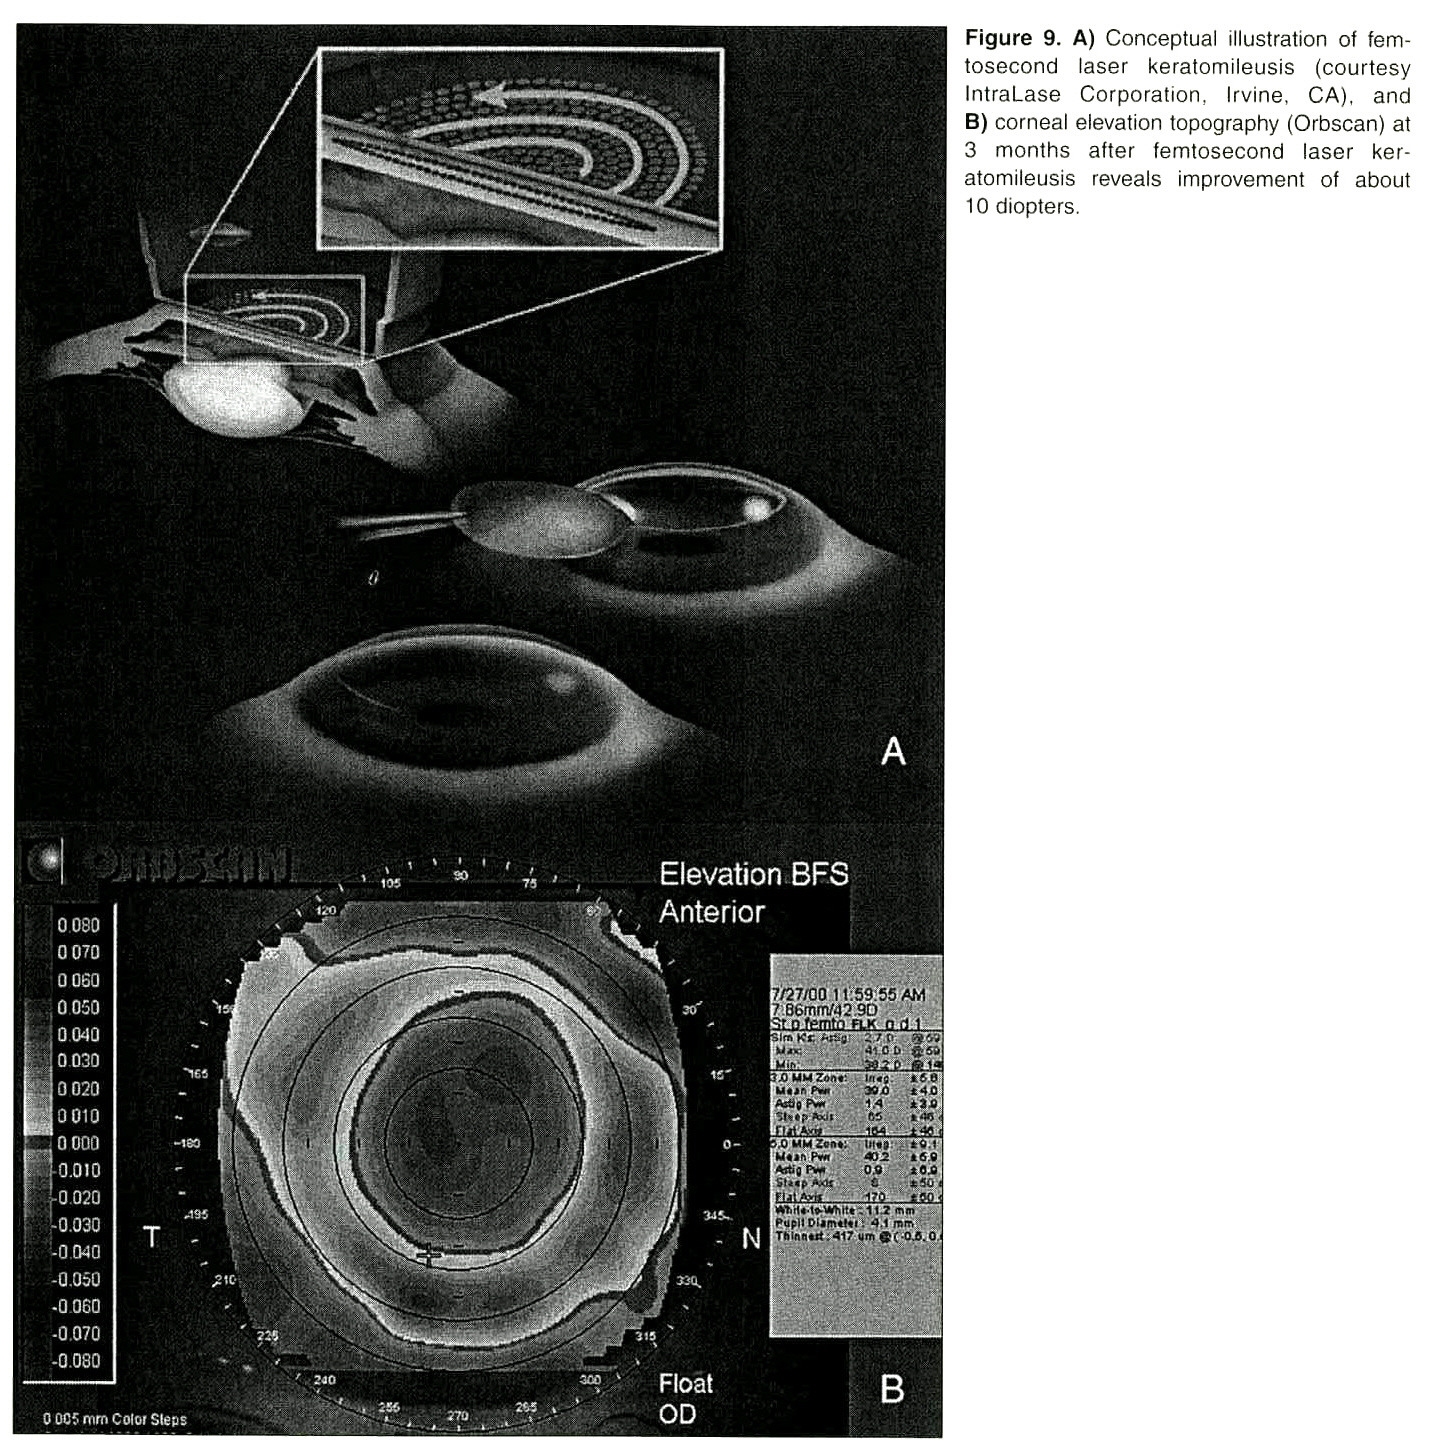 Figure 9. A) Conceptual illustration of femtosecond laser keratomileusis (courtesy IntraLase Corporation, Irvine, CA), and B) corneal elevation topography (Orbscan) at 3 months after femtosecond laser keratomileusis reveals improvement of about 10 diopters.